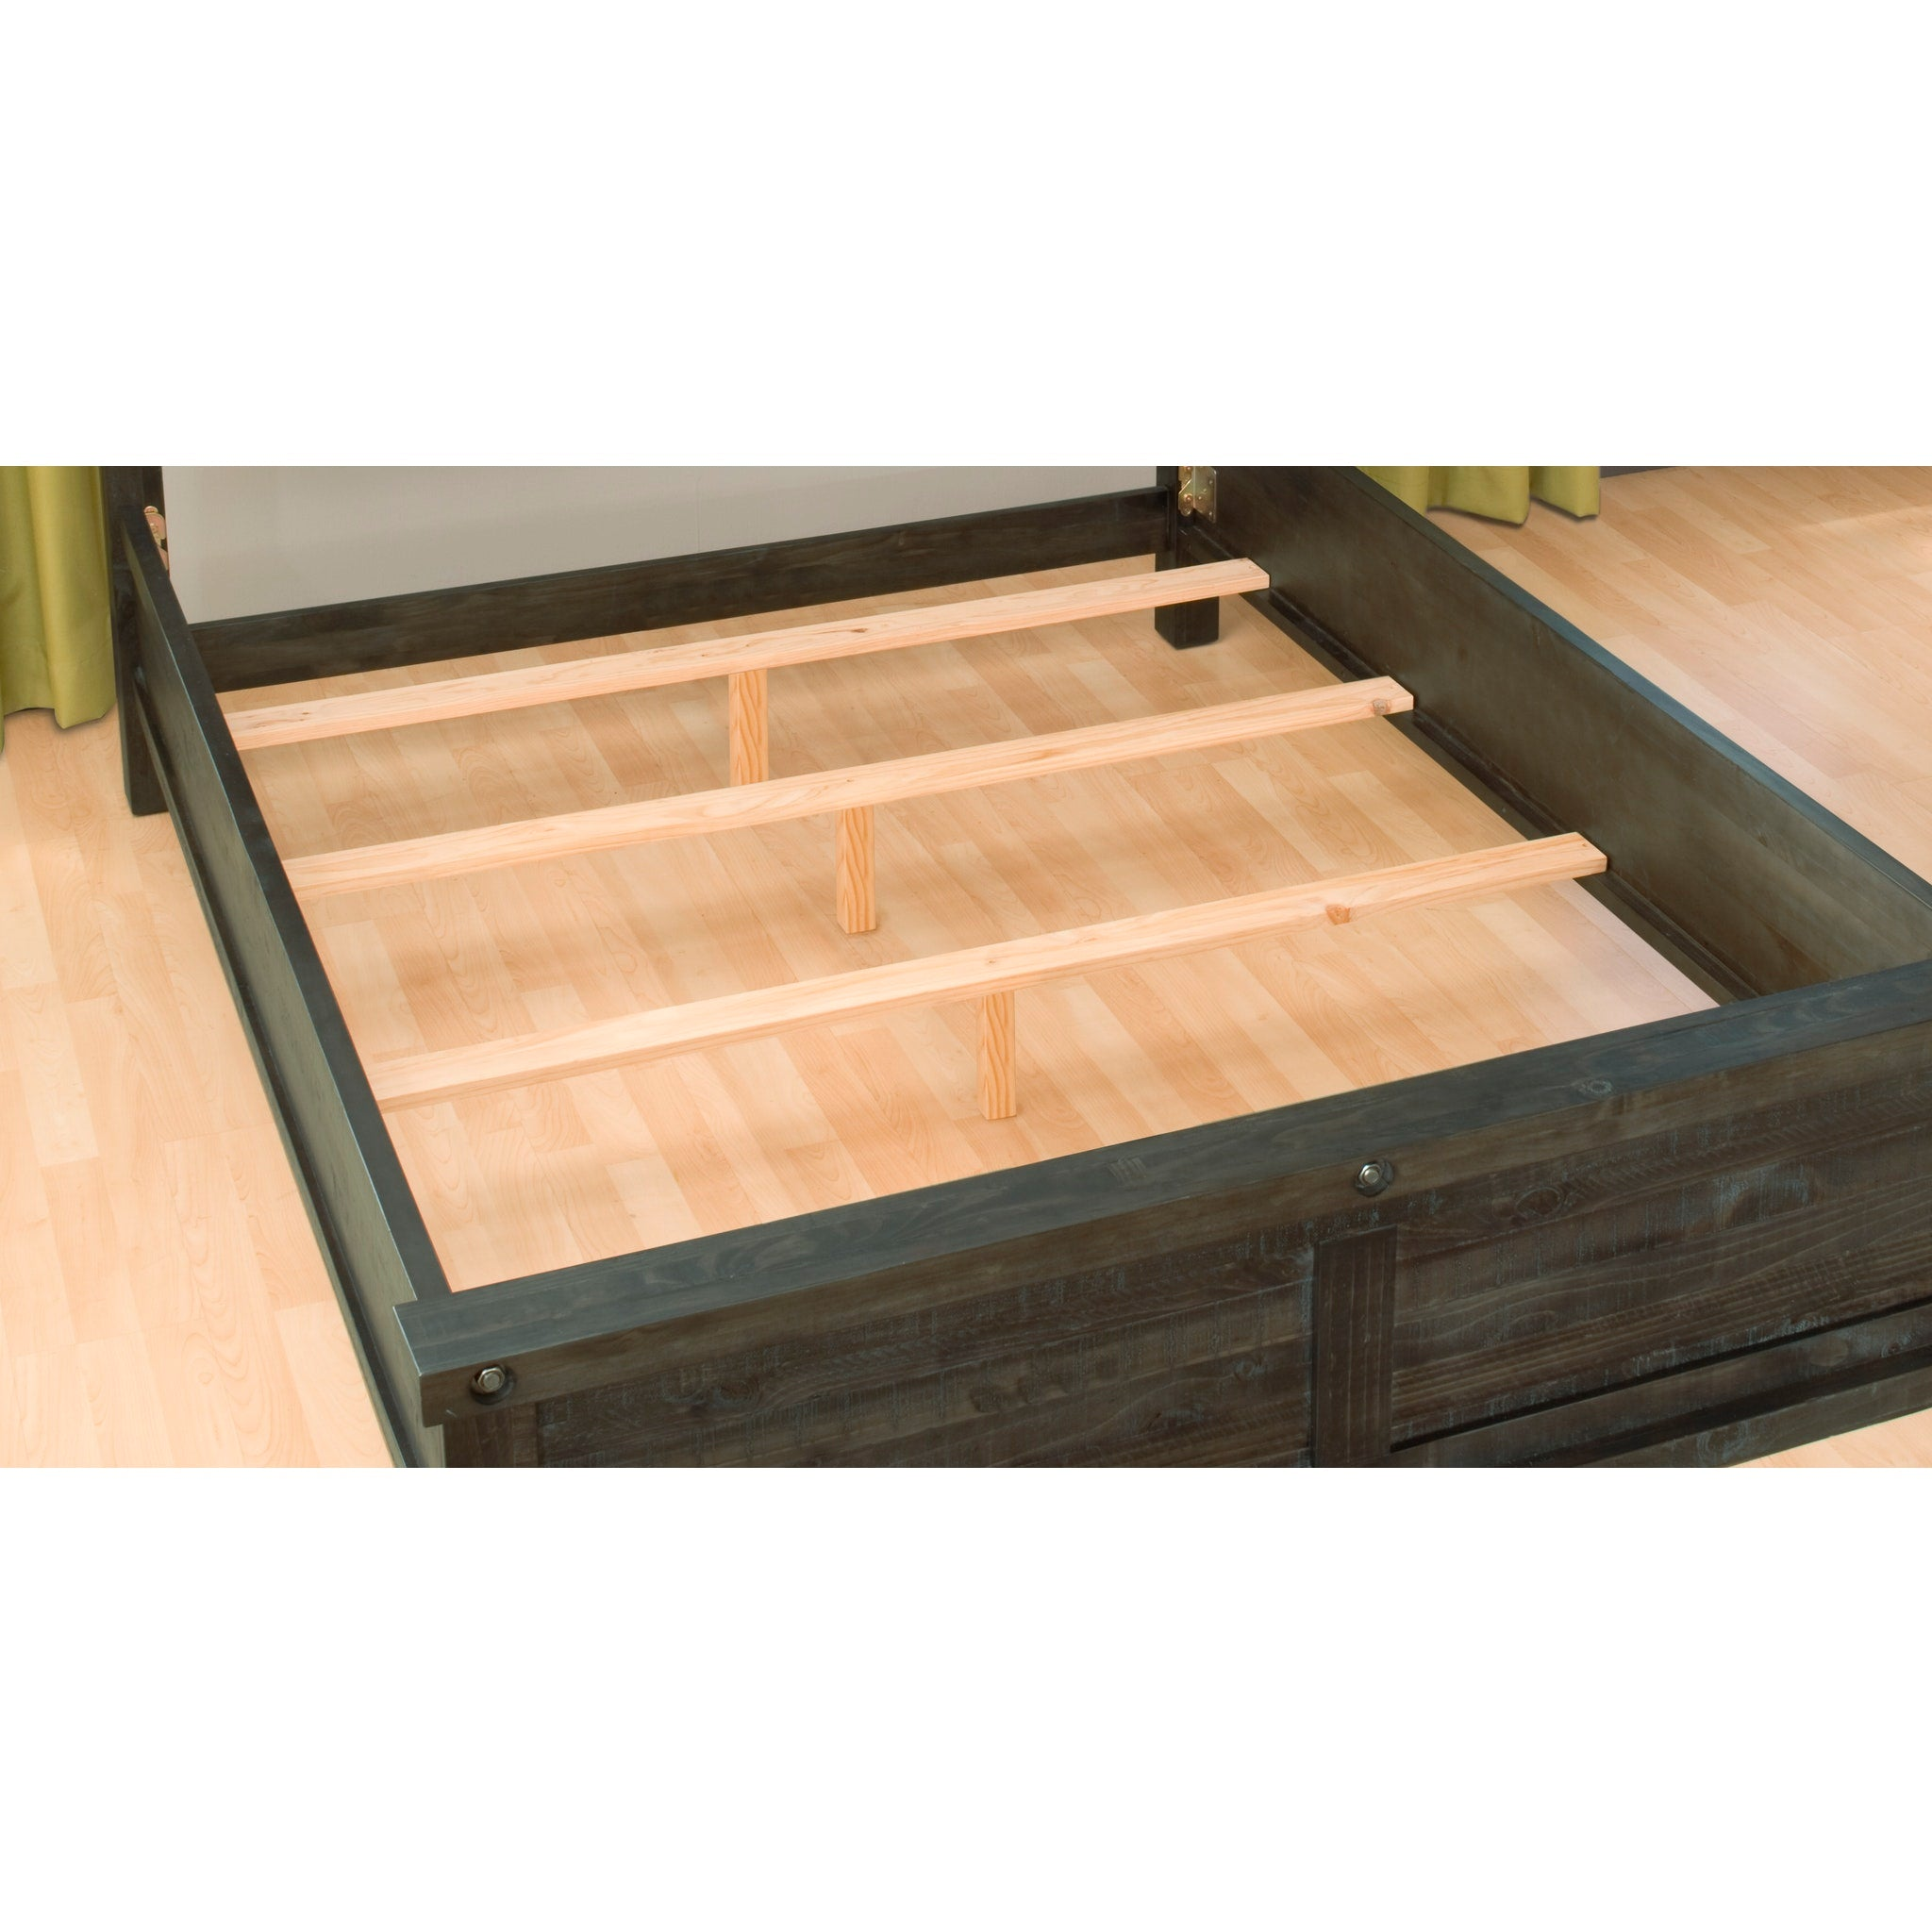 Yosemite King-size Solid Wood Panel Bed in Café